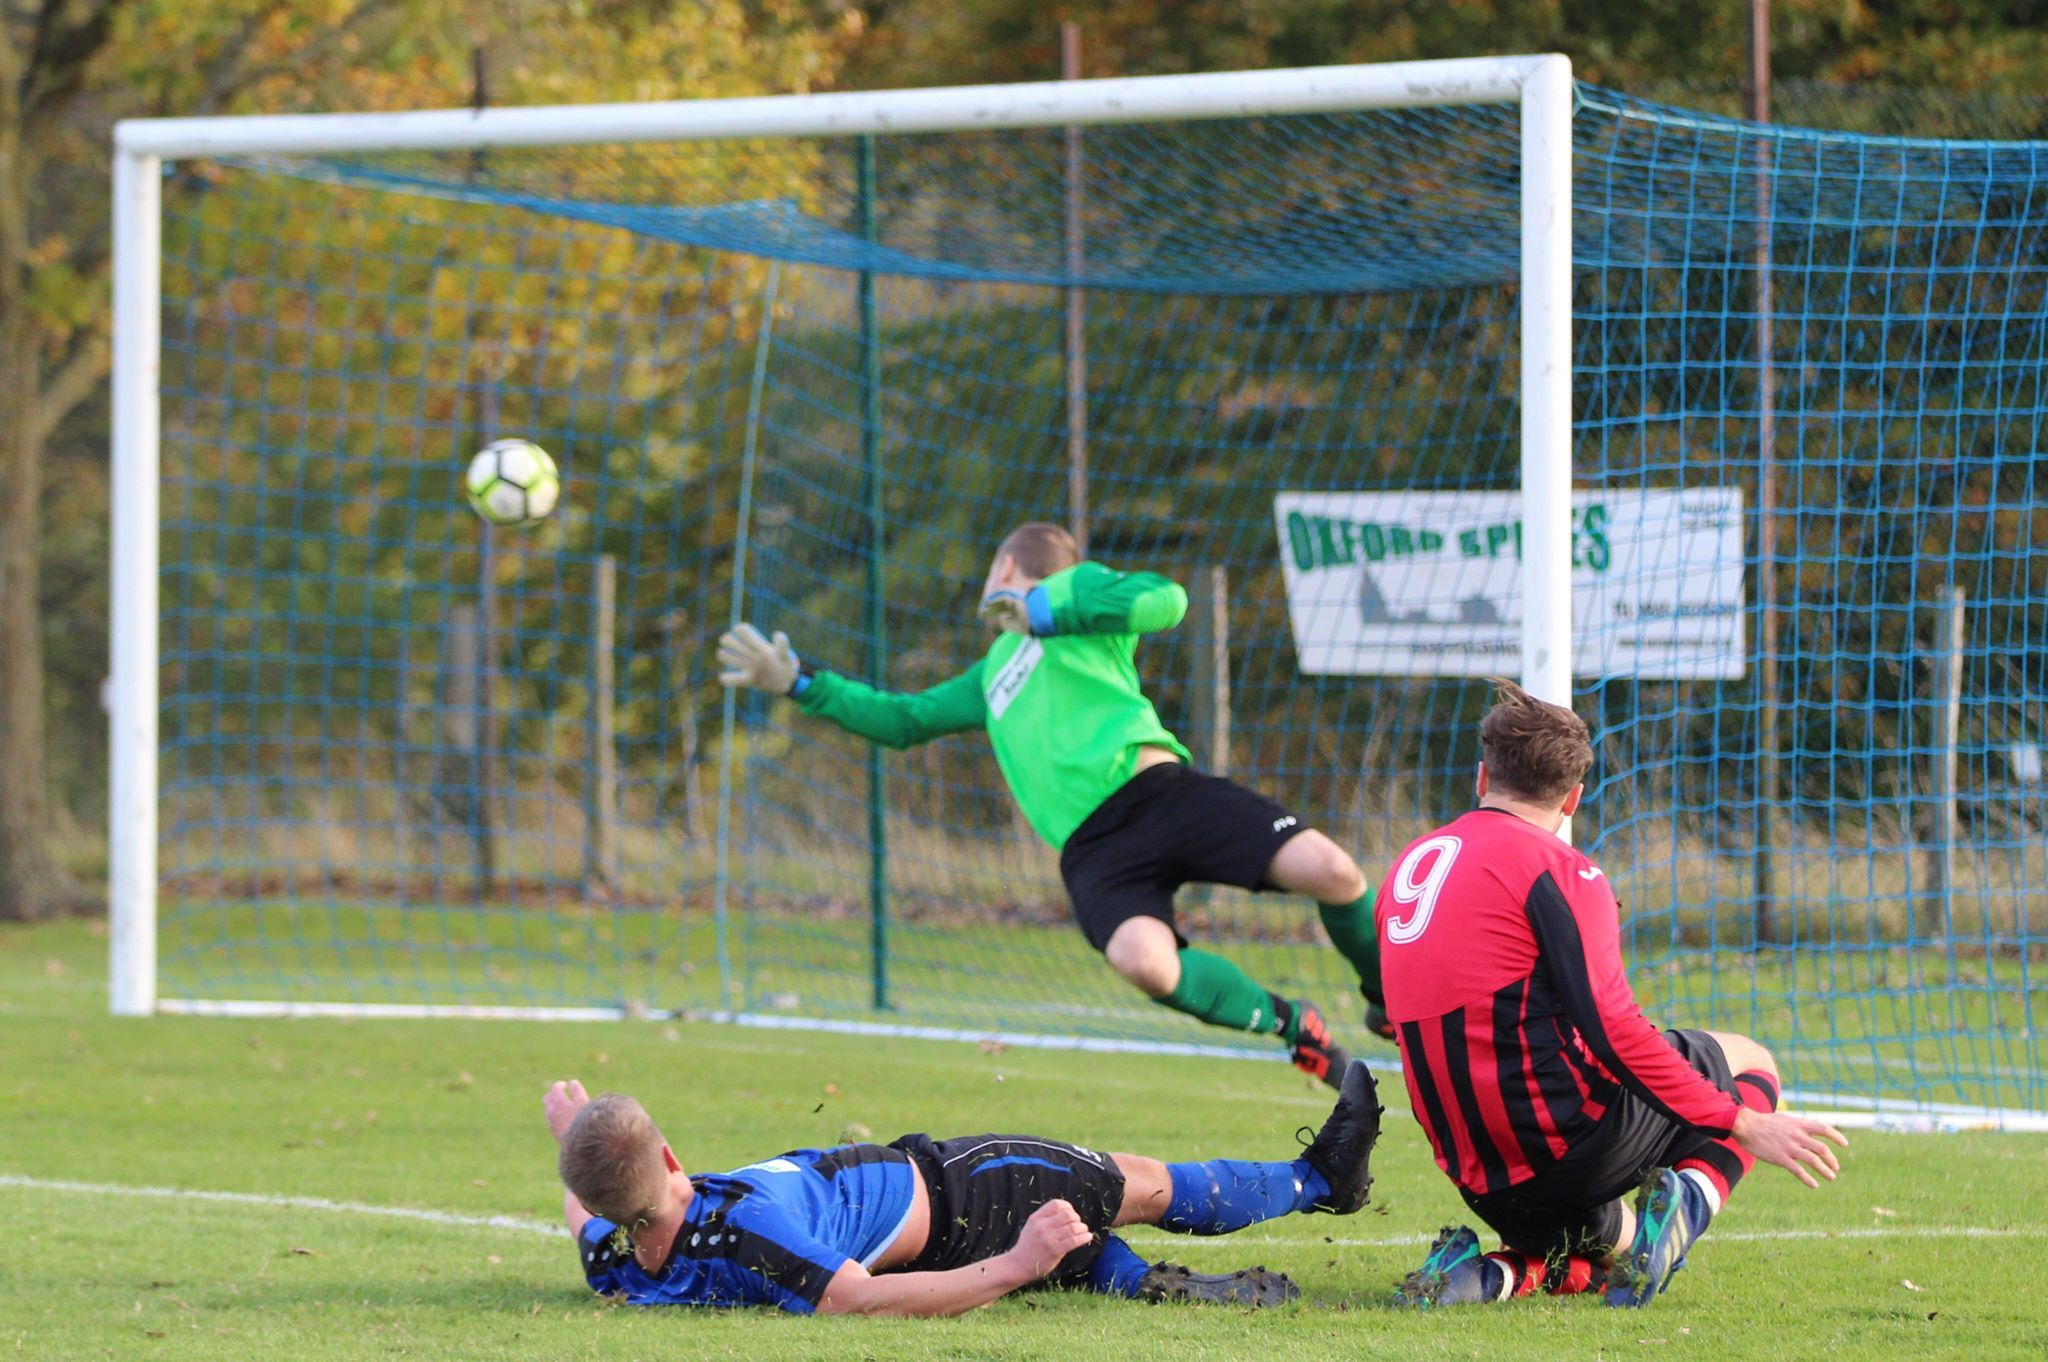 Berinsfield's Arran Colley (9) watches on as his shot beats the East Hendred goalkeeper during their 2-2 draw